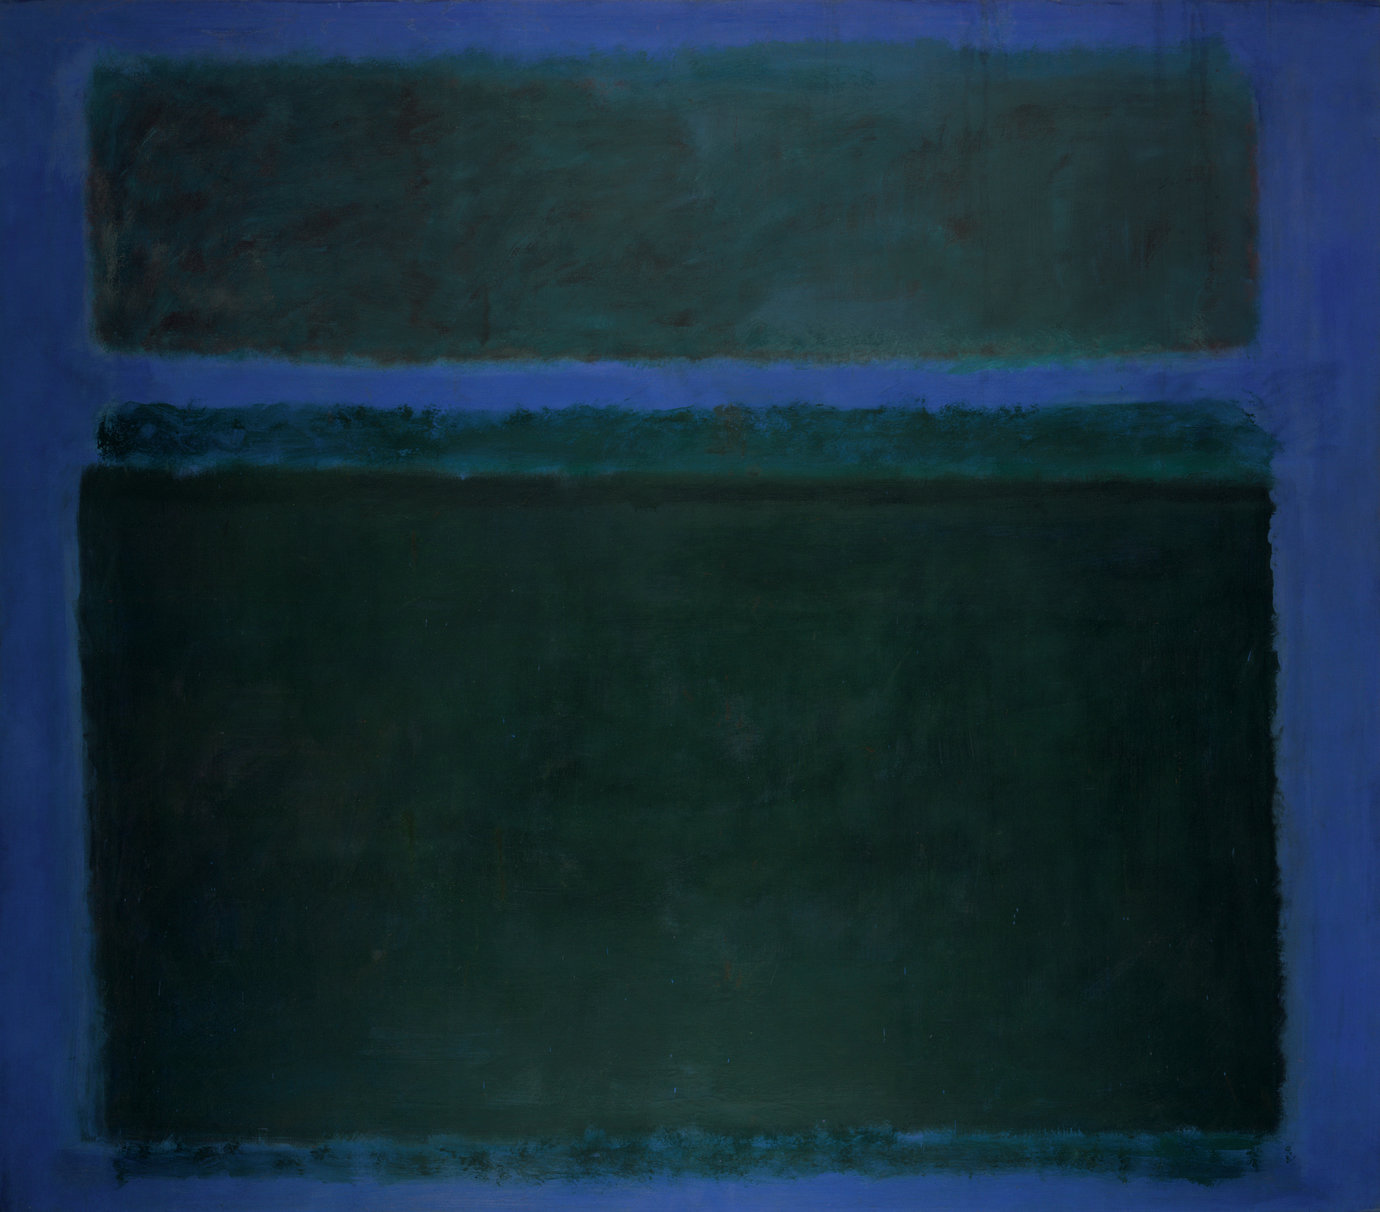 ", 1957. Oil on canvas, 8&apos; 7"" x 9&apos; 8-1/2"" (261.6 cm x 295.9 cm)."